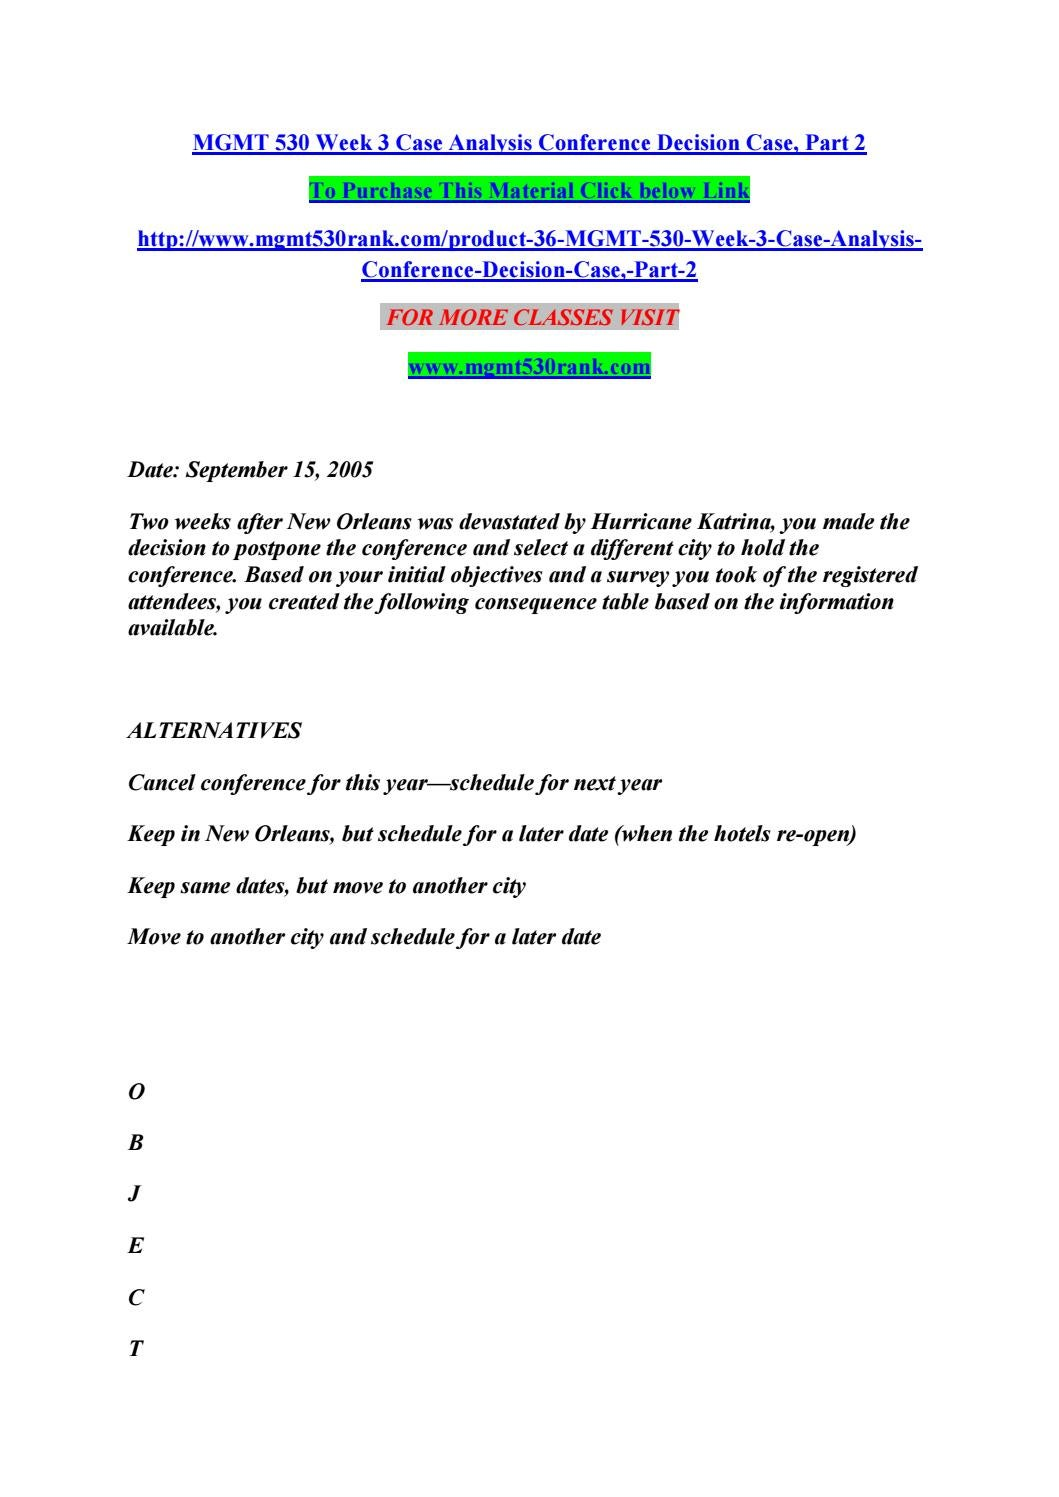 week 2 case analysis conference decision case